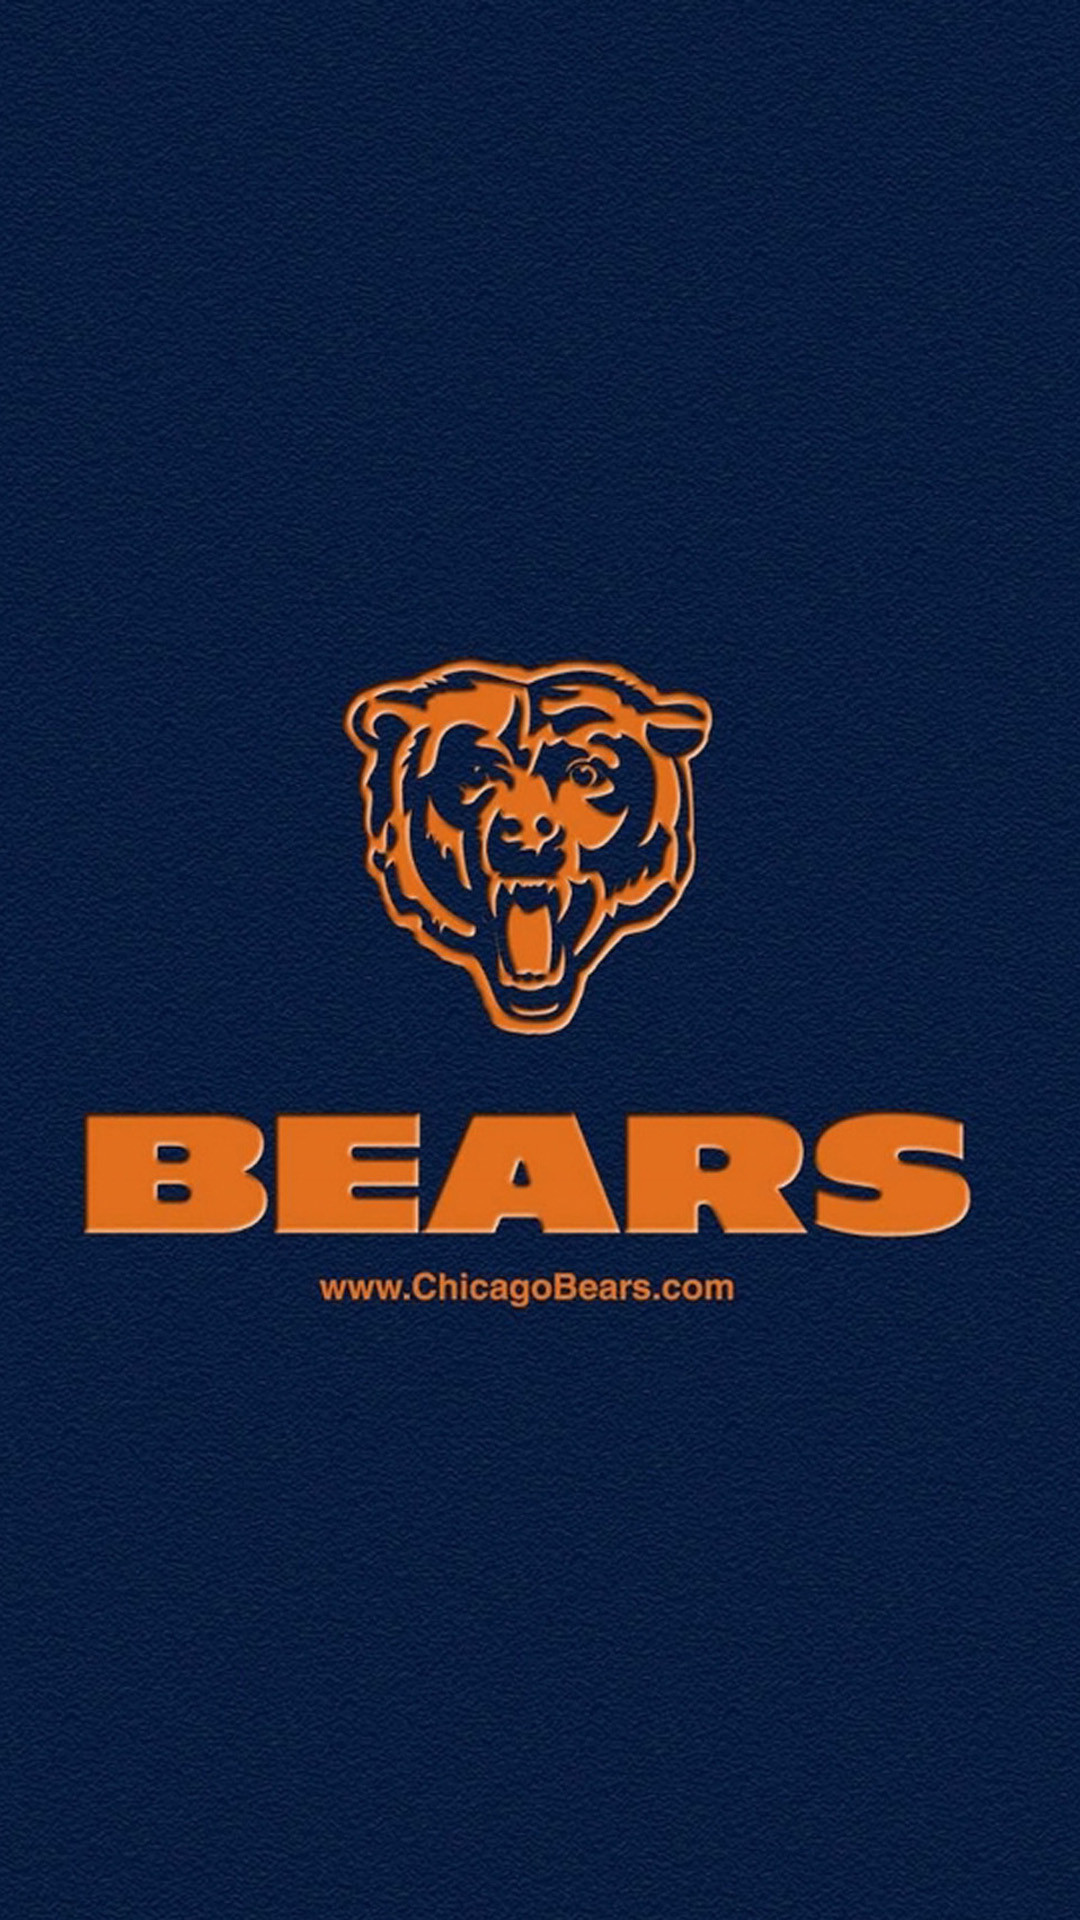 1080x1920 ... chicago cubs wallpaper qige87 com; chicago bears wallpaper for android  download image gallery hcpr ...